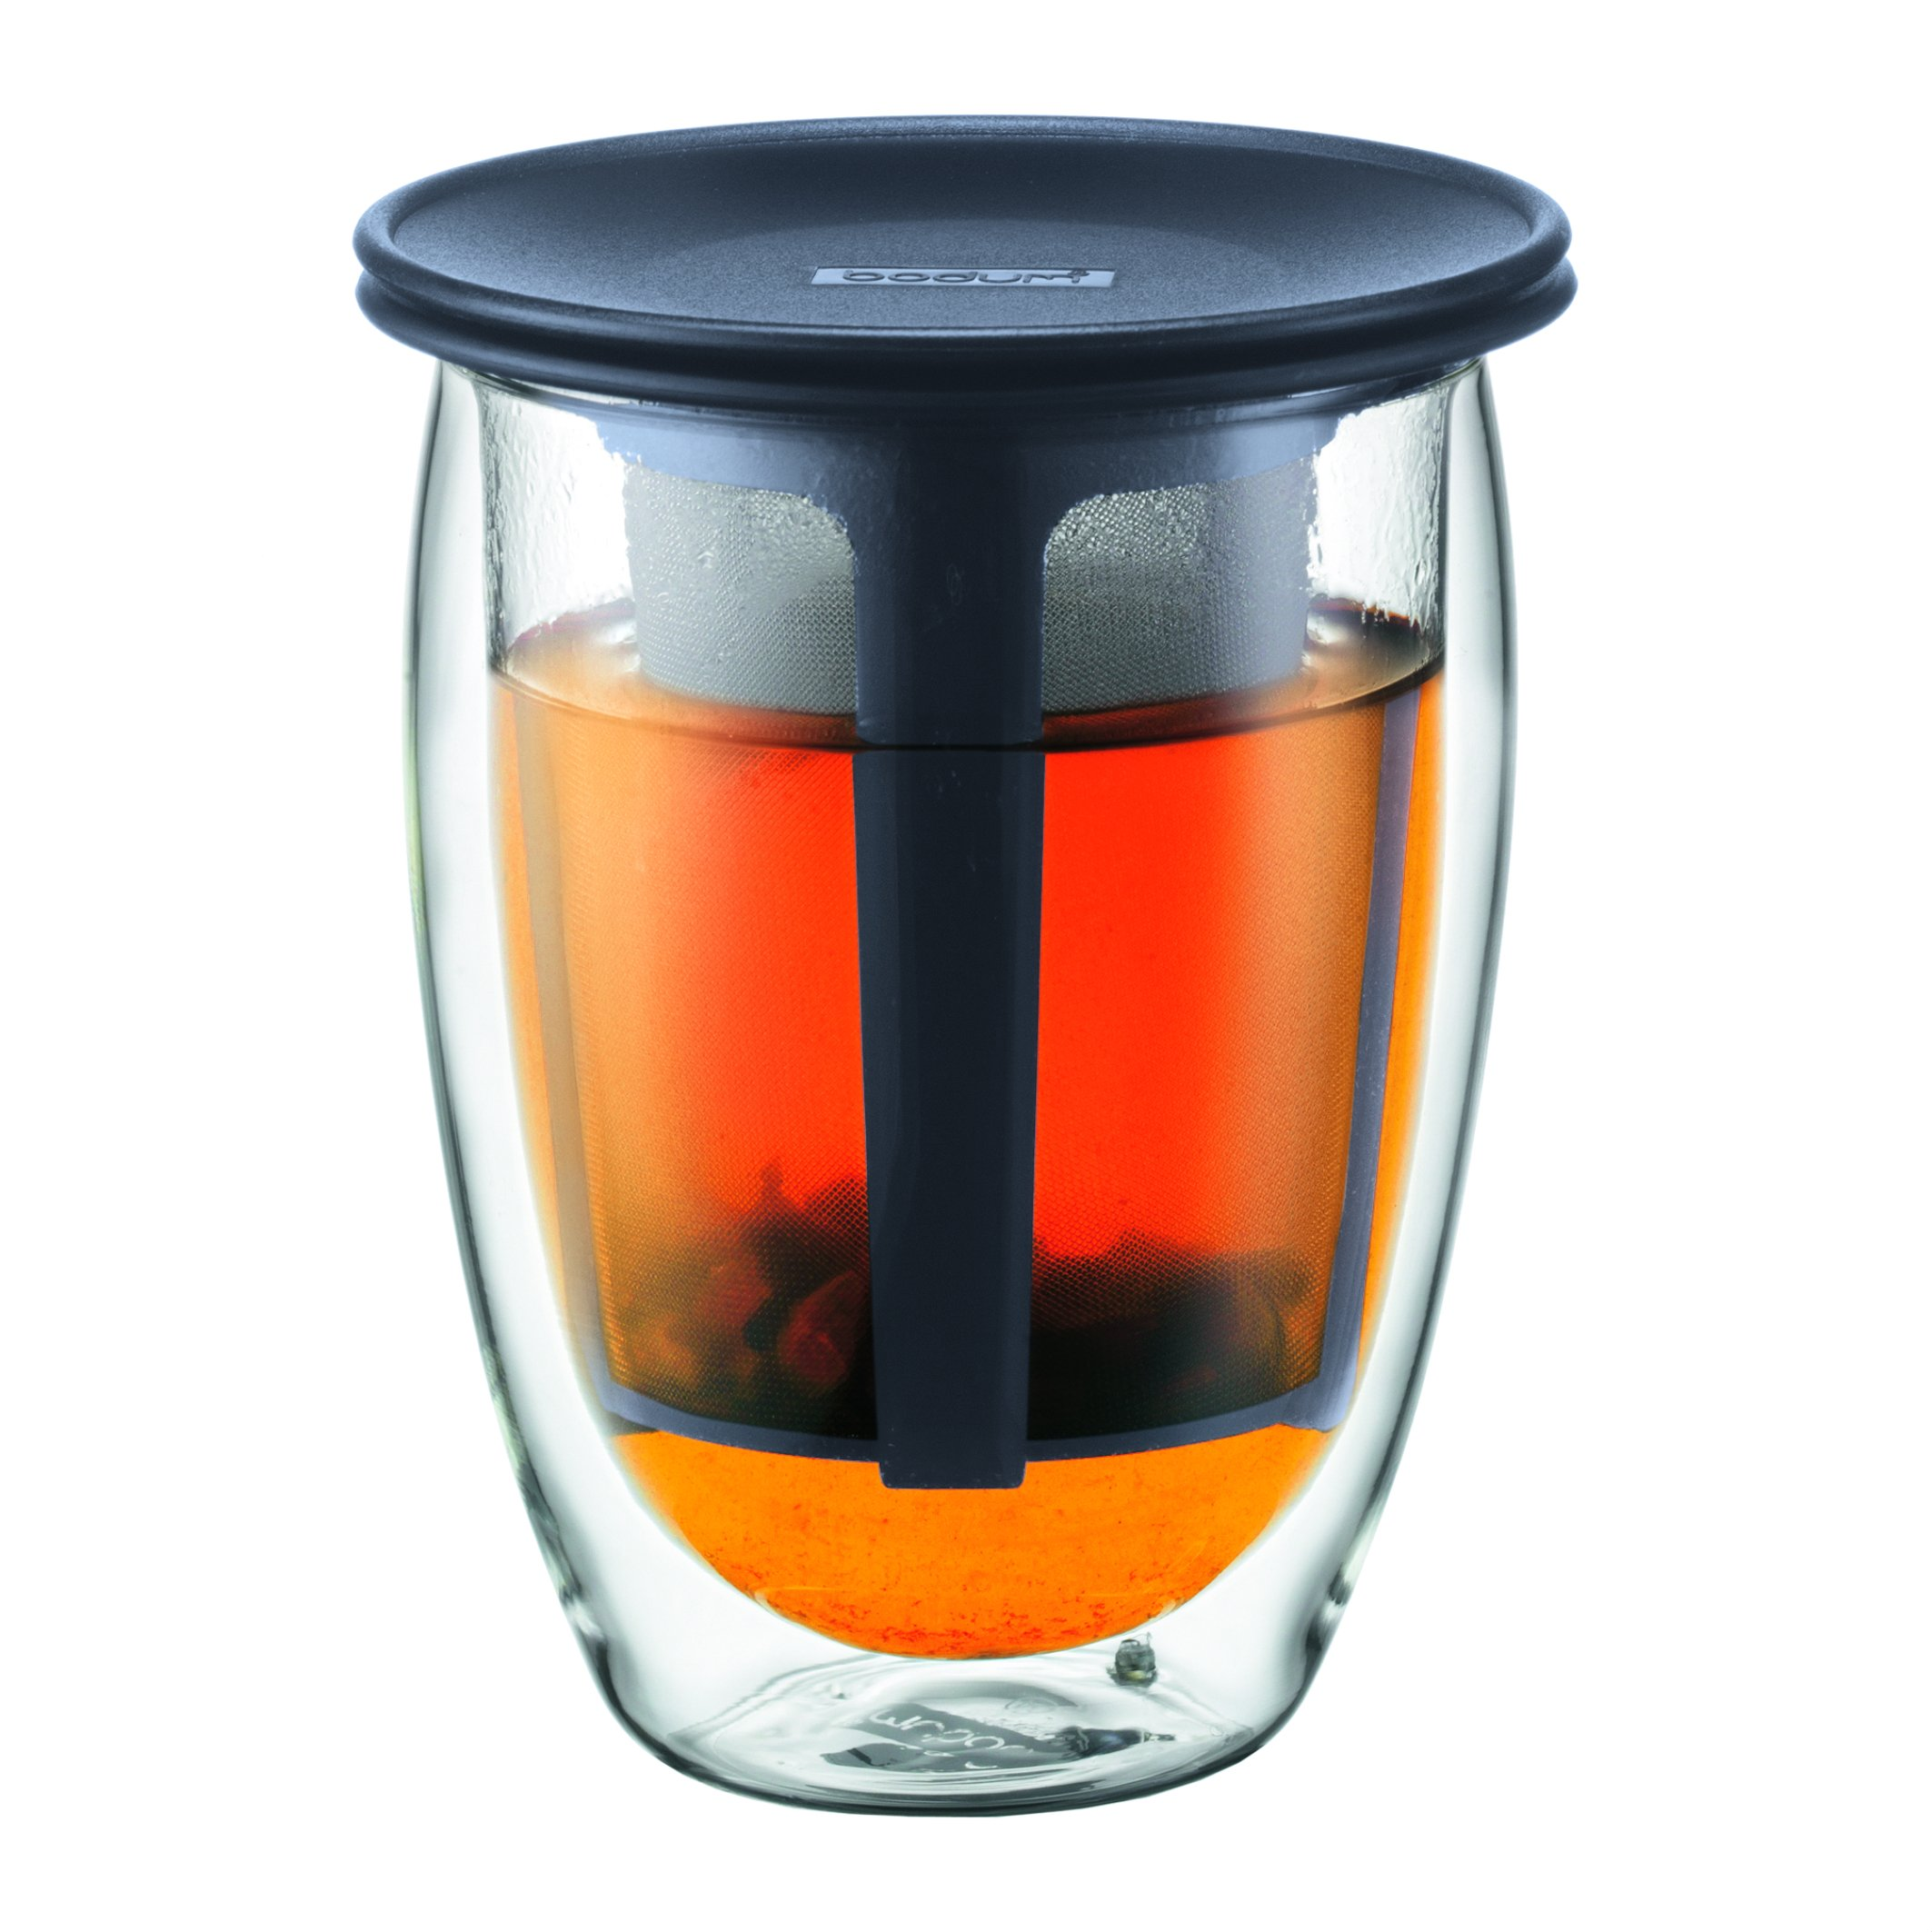 Bodum 12-Ounce Tea for One, Double Wall Glass with Strainer, Black